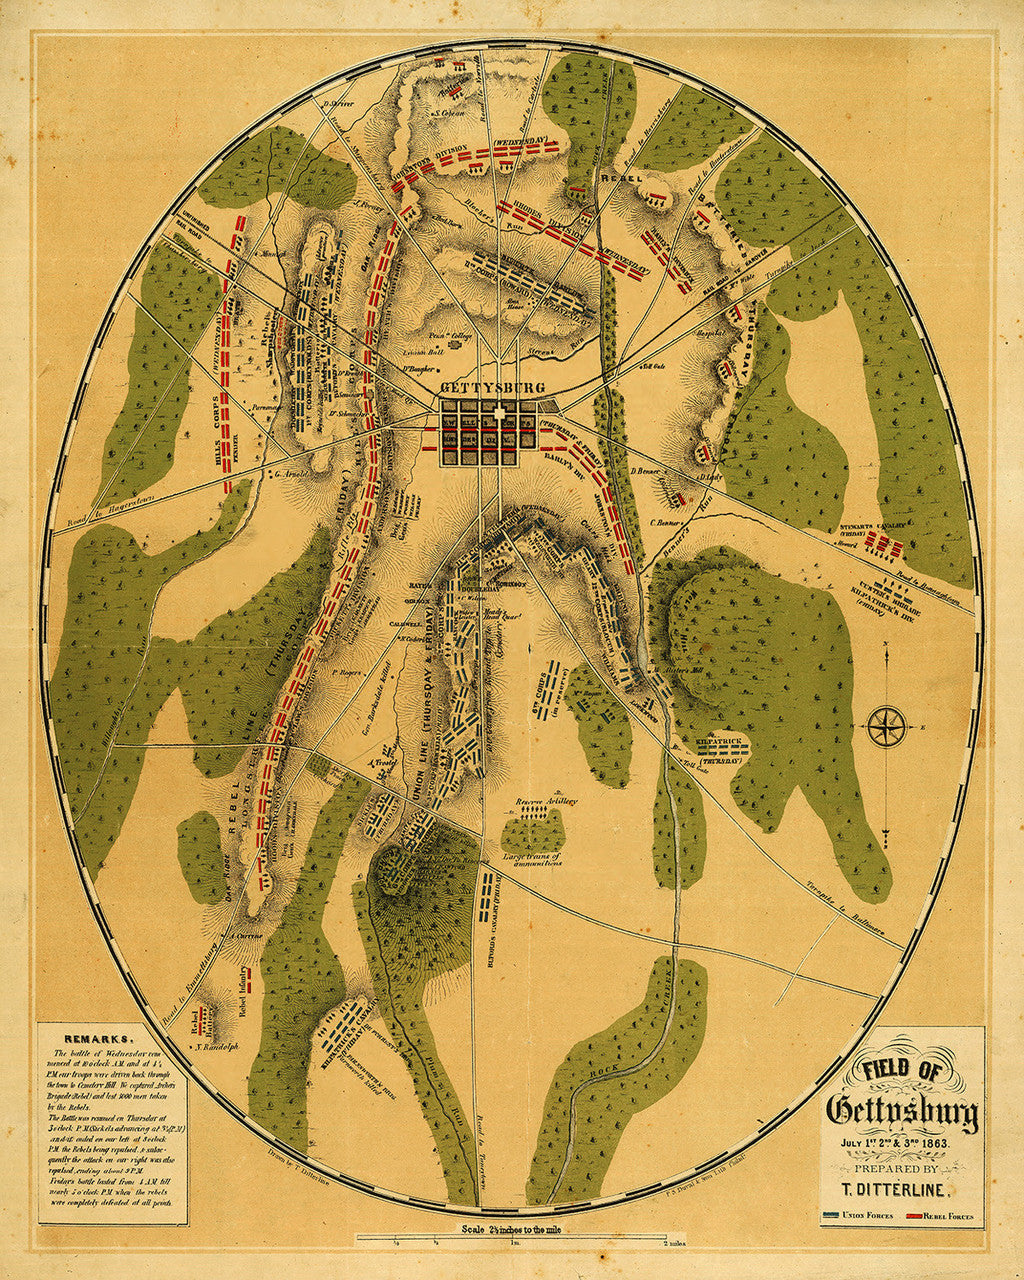 Battle of Gettysburg 1863 American Civil War Map Battlemapsus